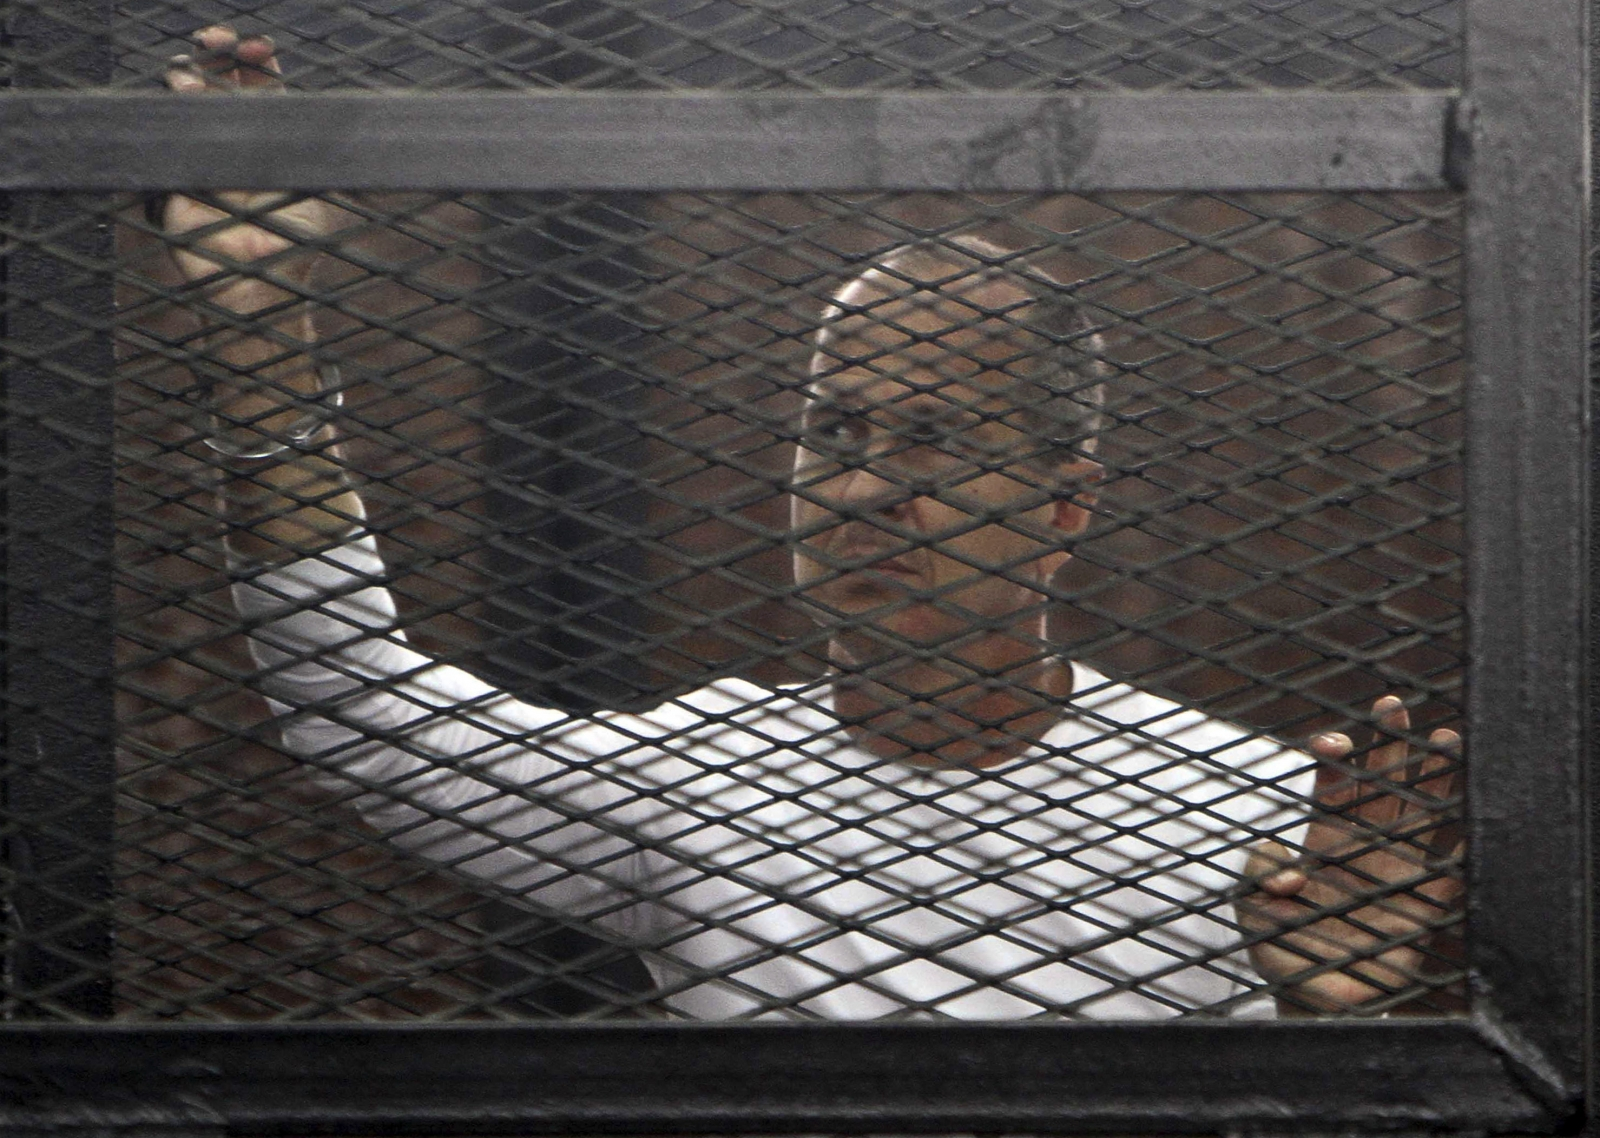 Jailed Al-Jazeera journalist Peter Greste jailed from jail in Cairo